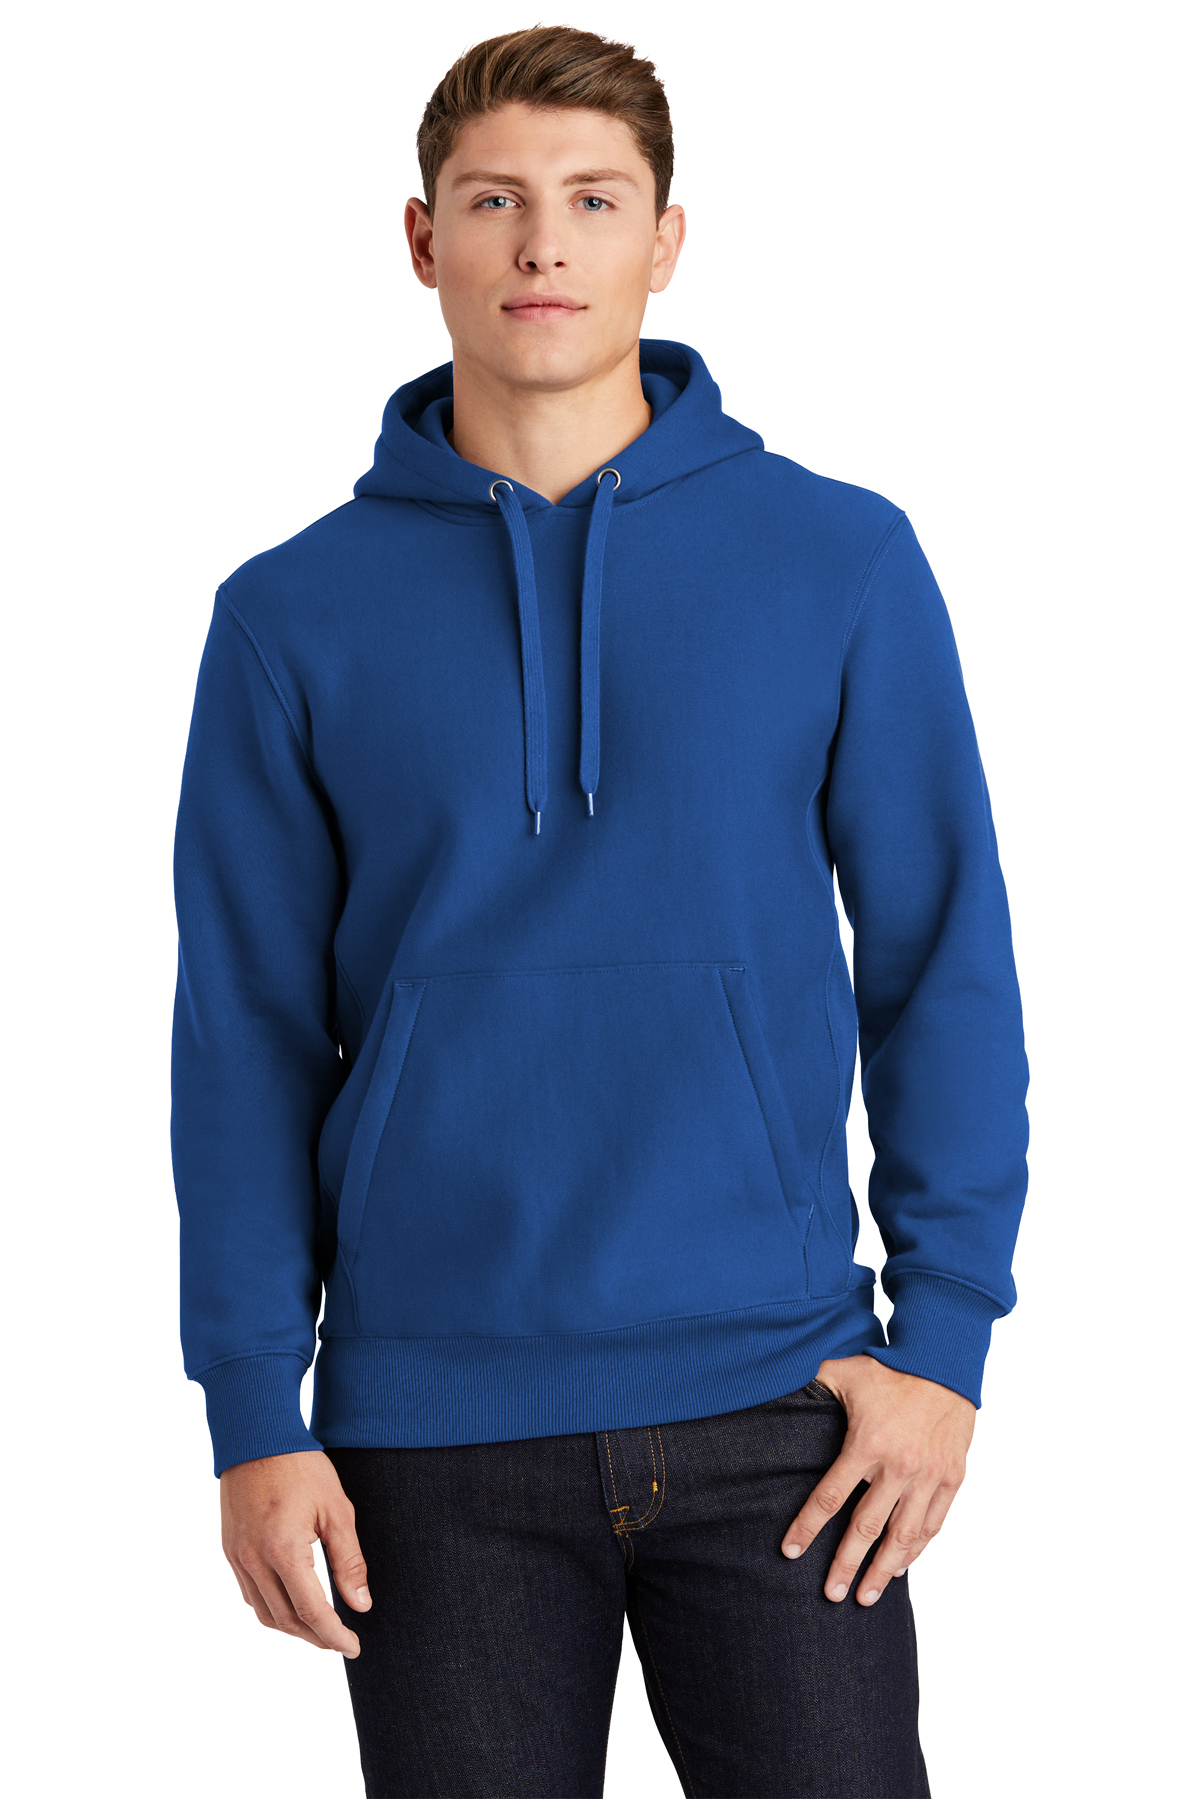 Sport Tek Super Heavyweight Pullover Hooded Sweatshirt Heavyweight Sweatshirts Fleece Sanmar Wholesale & supply store performance fabric for performing people. sport tek super heavyweight pullover hooded sweatshirt heavyweight sweatshirts fleece sanmar